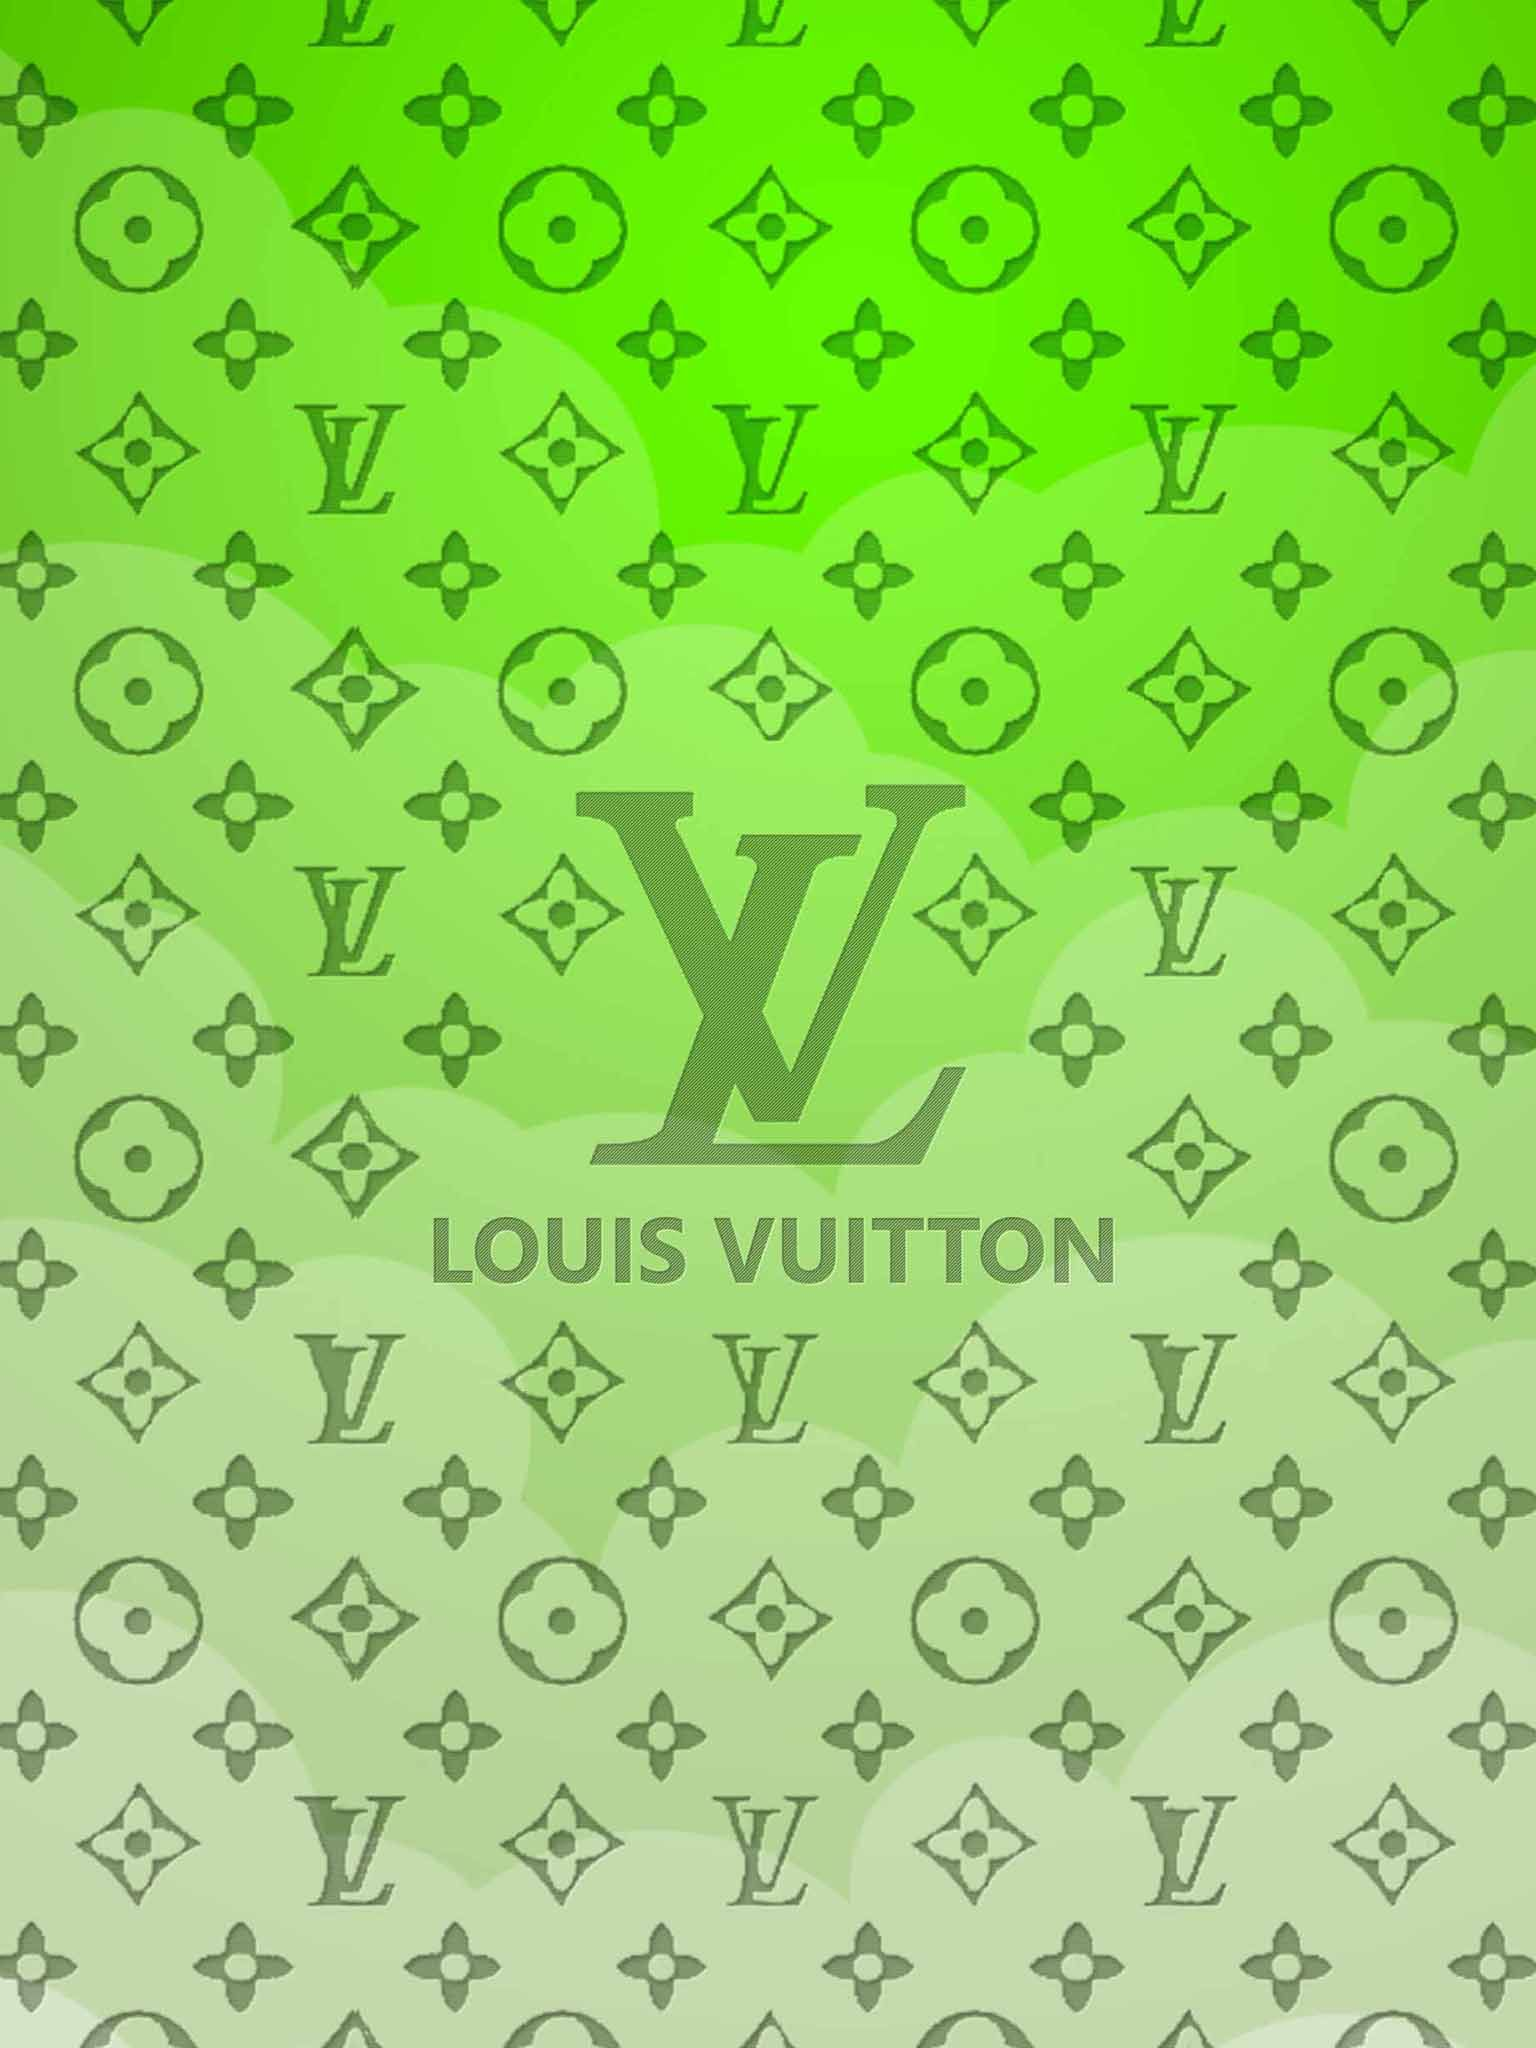 Pin By Free Wallpaper Phone On Louis Vuitton Wallpaper For Ipad Louis Vuitton Iphone Wallpaper Louis Vuitton Green Aesthetic